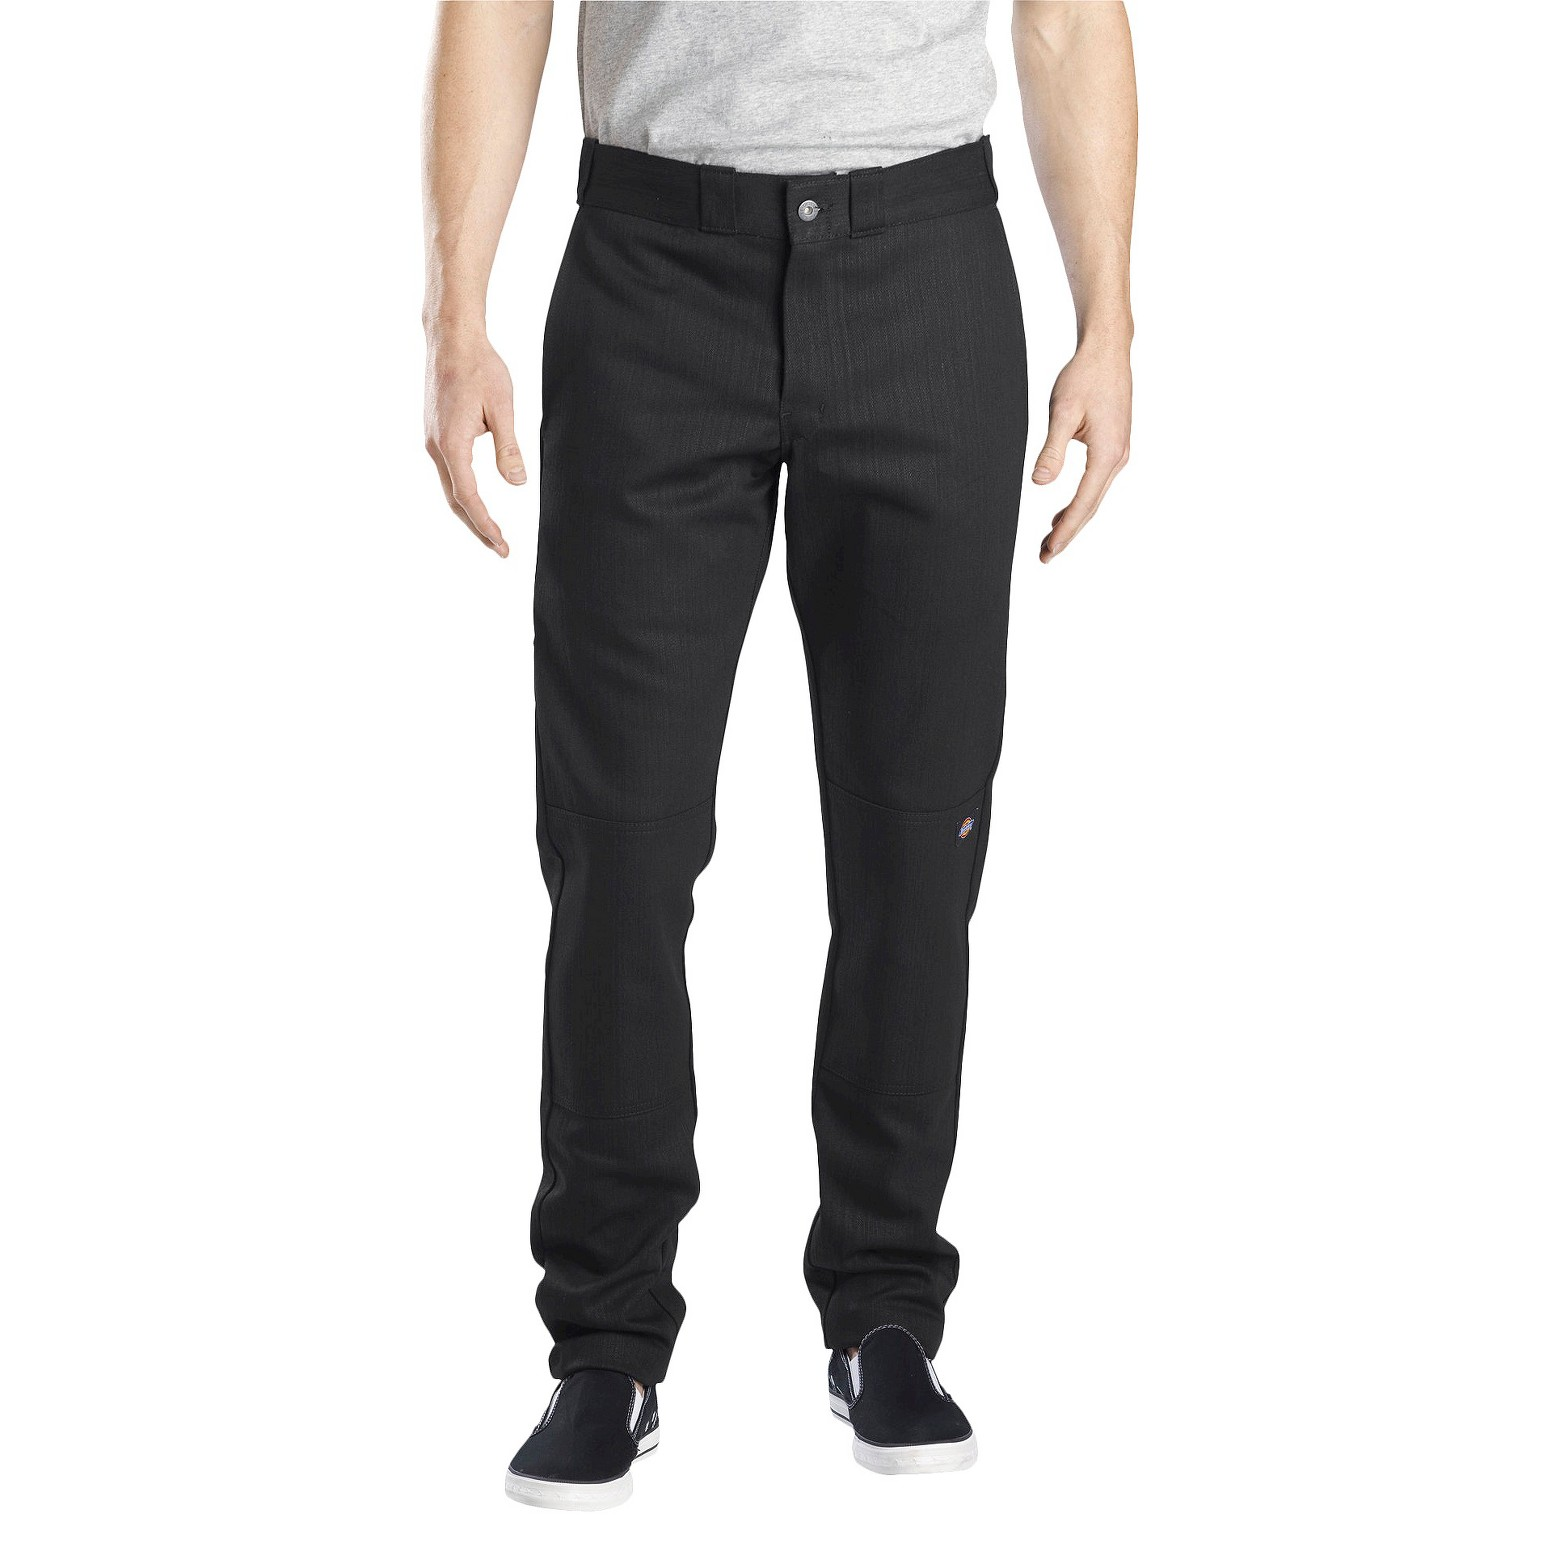 Dickies® Men's Skinny Straight Fit Flex Twill Double Knee Pants, $14.99 - $26.99